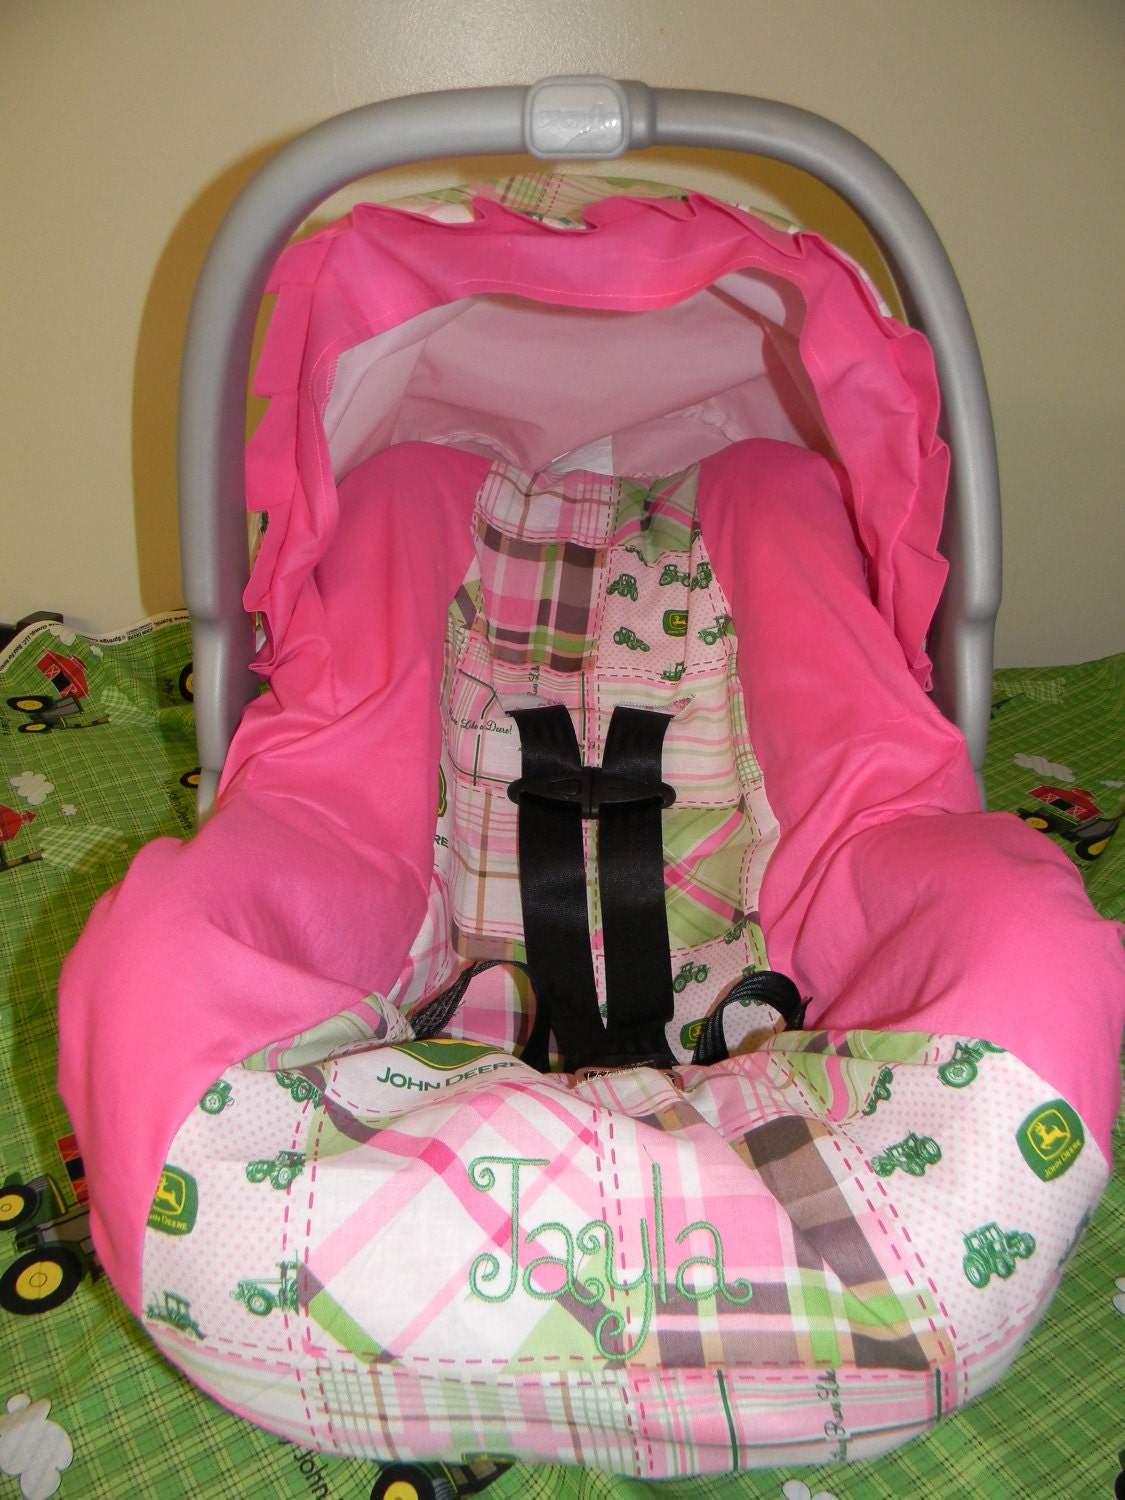 Pink John Deere Girl Infant Car Seat Cover By